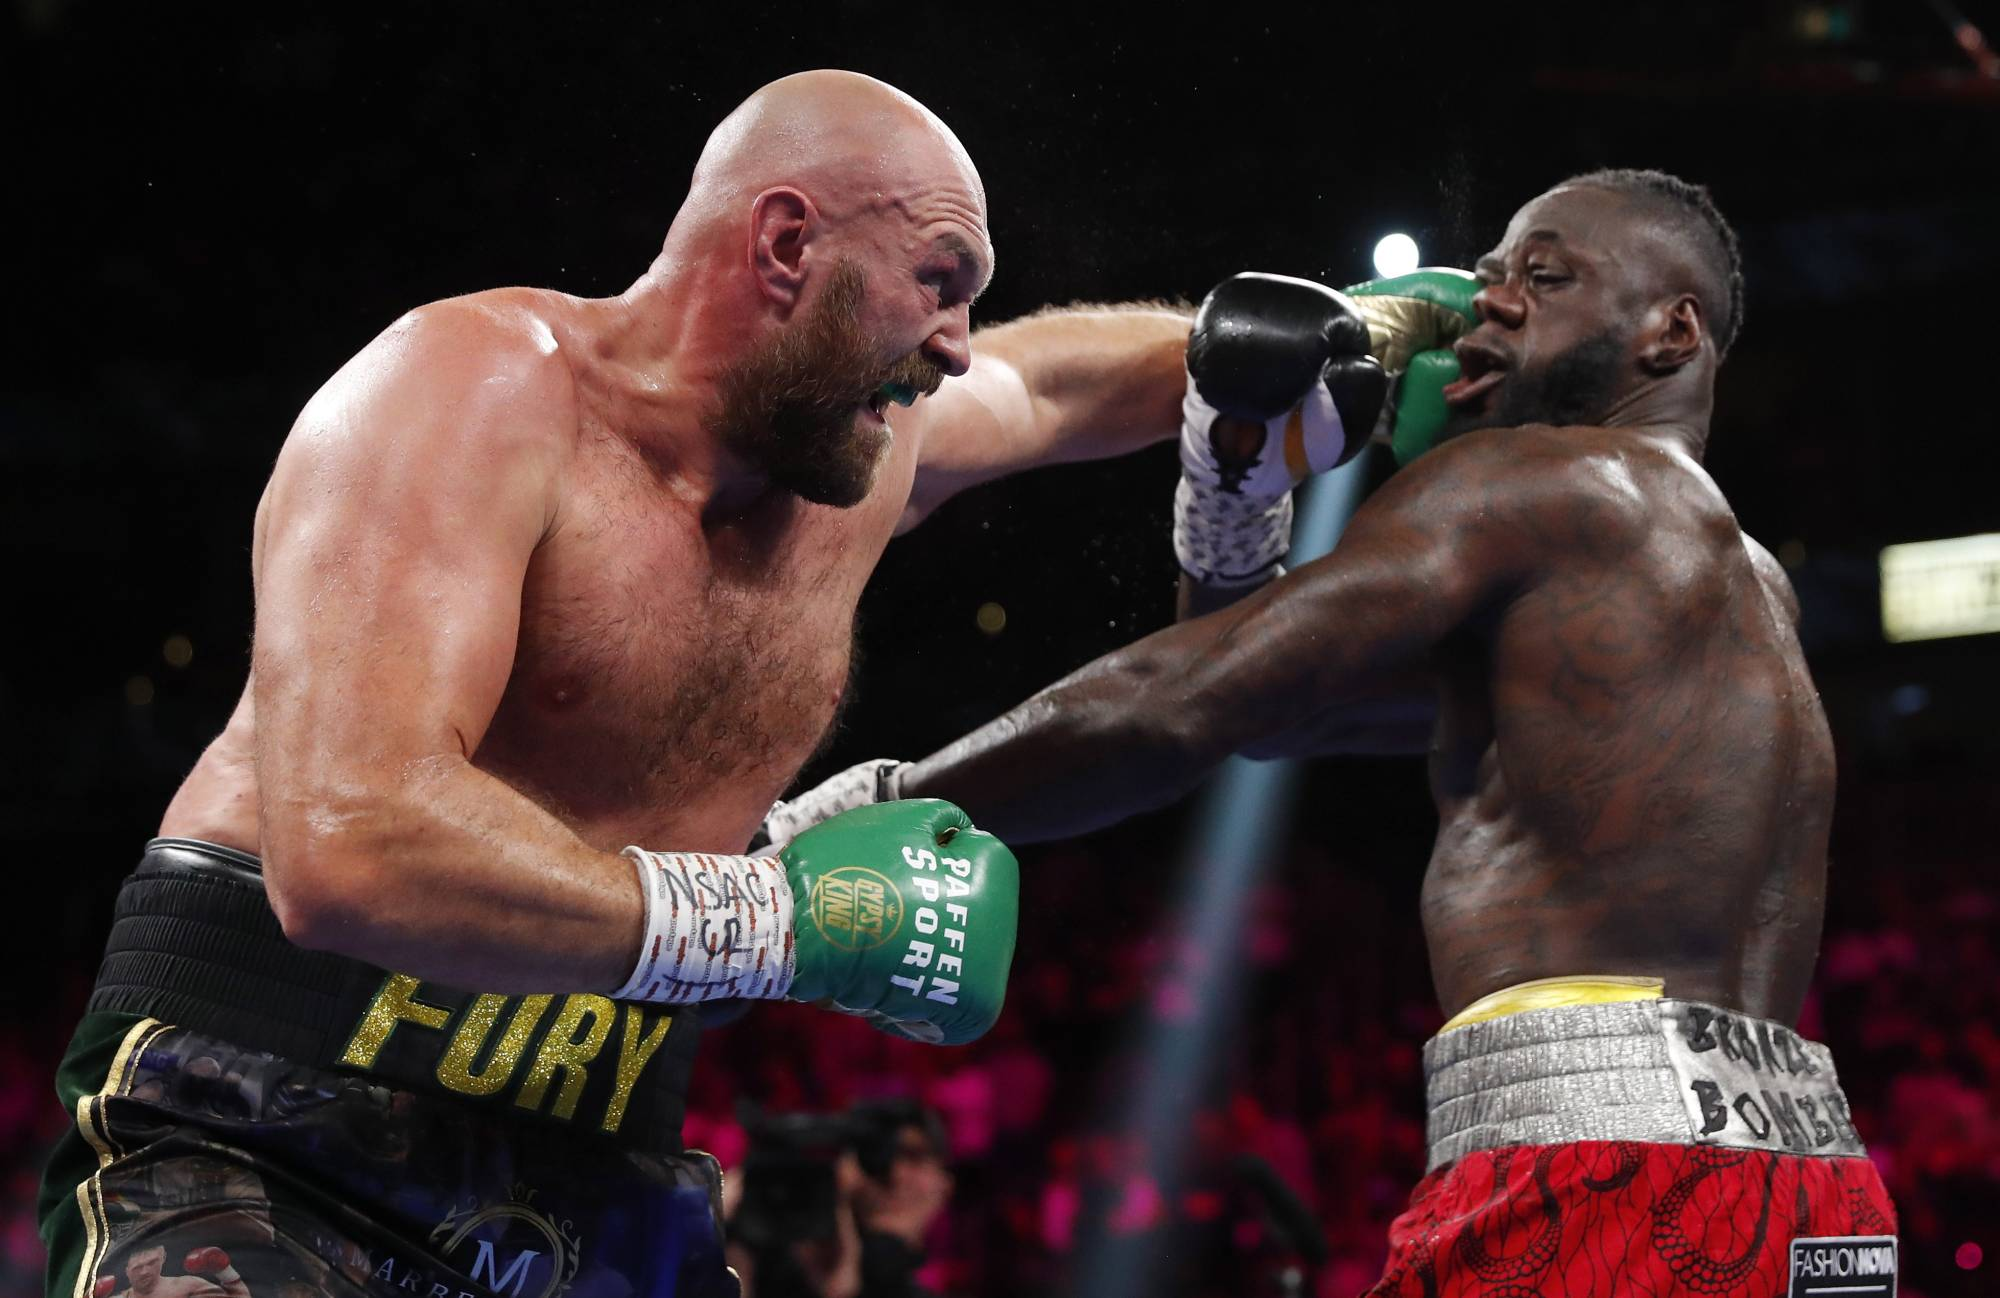 Tyson Fury (left) punches Deontay Wilder during their WBC heavyweight title bout on Saturday in Las Vegas. | REUTERS